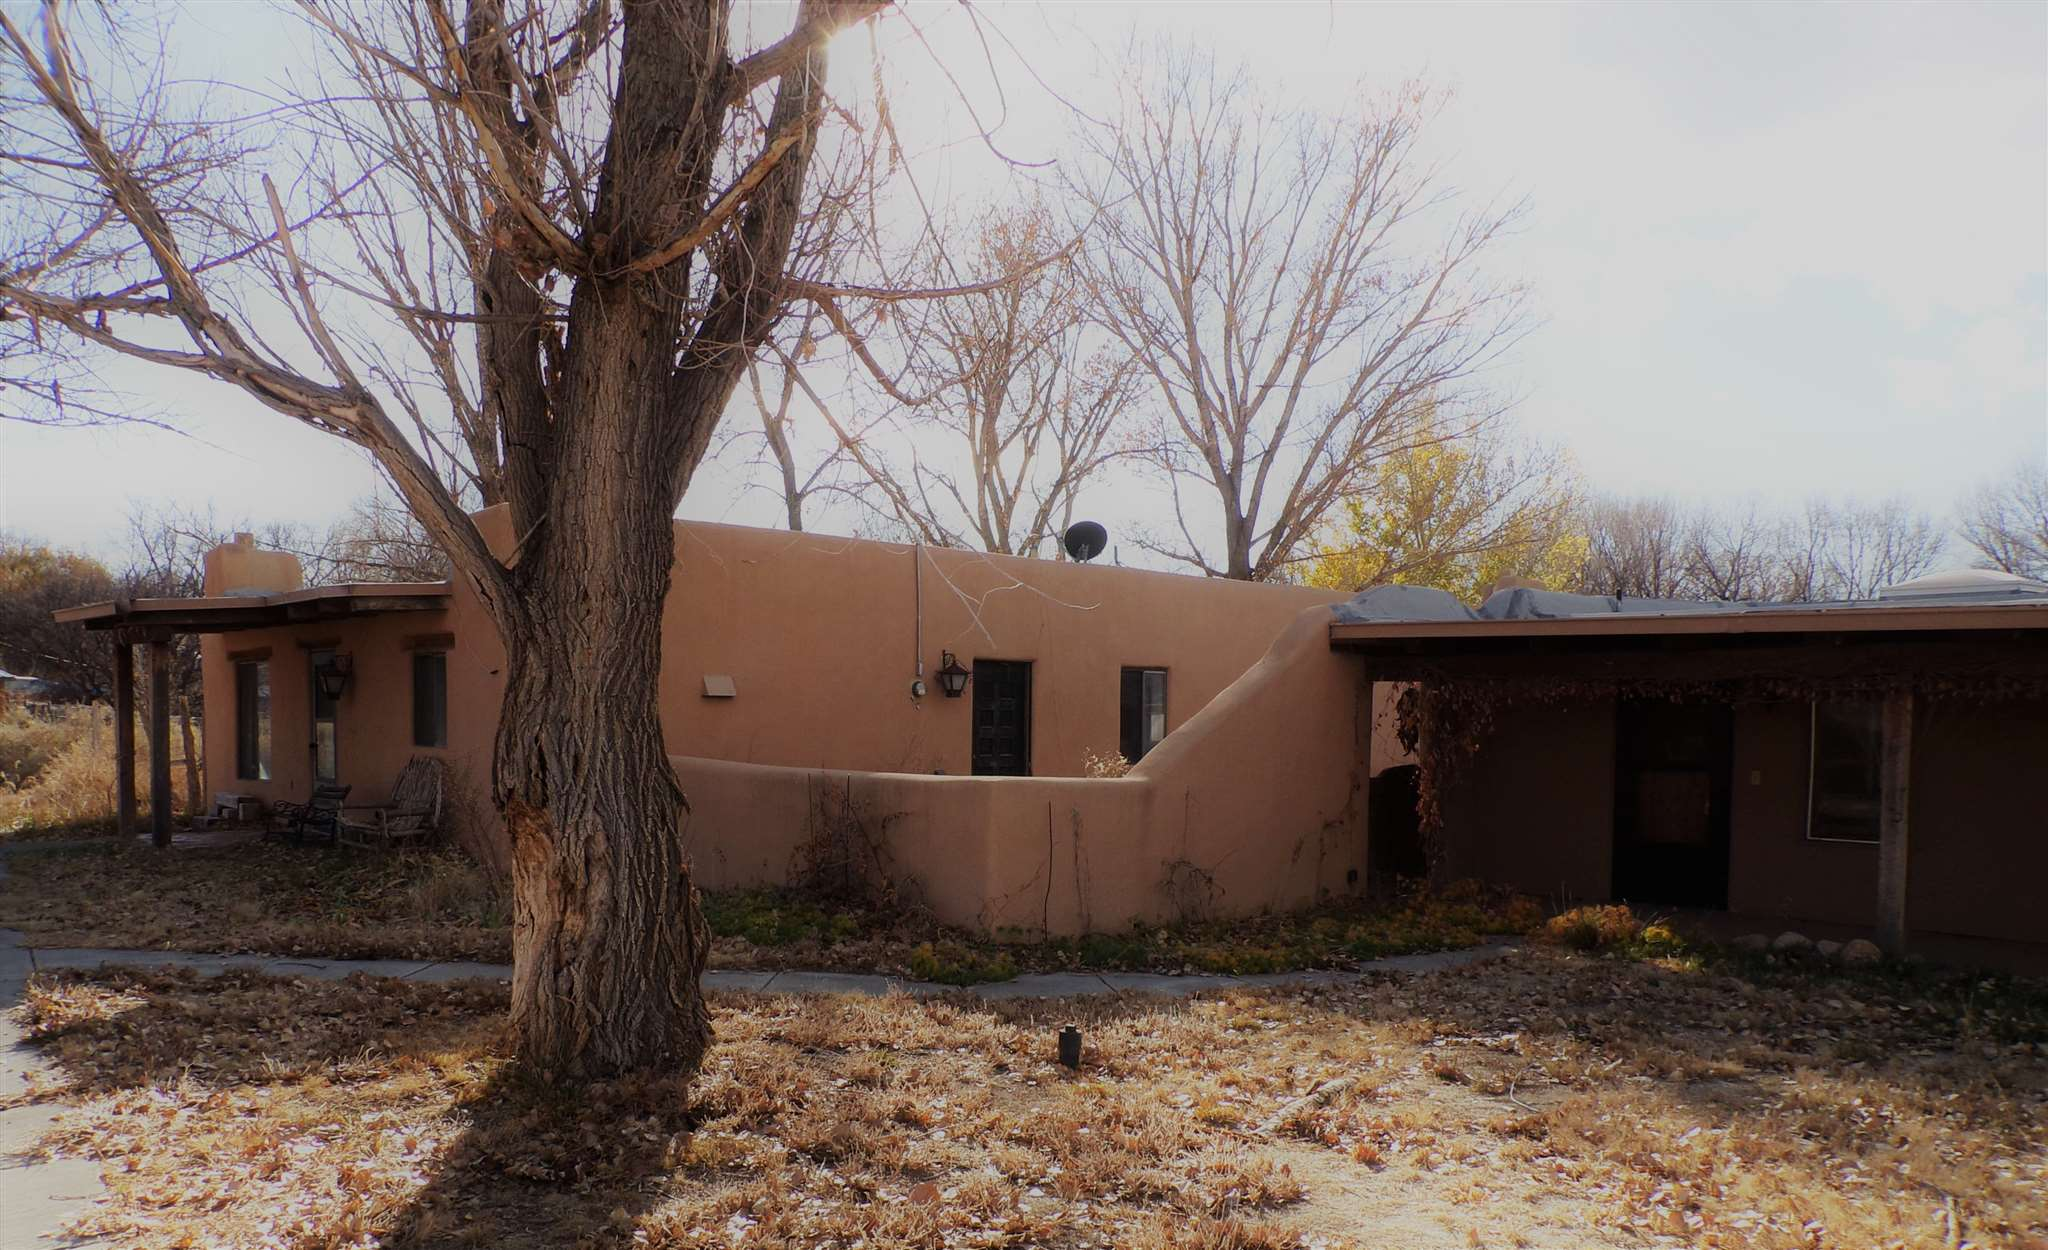 1 Rocking Horse Rd., Santa Fe, New Mexico 87506, 2 Bedrooms Bedrooms, ,2 BathroomsBathrooms,Single Family,For Sale,1 Rocking Horse Rd.,202004943